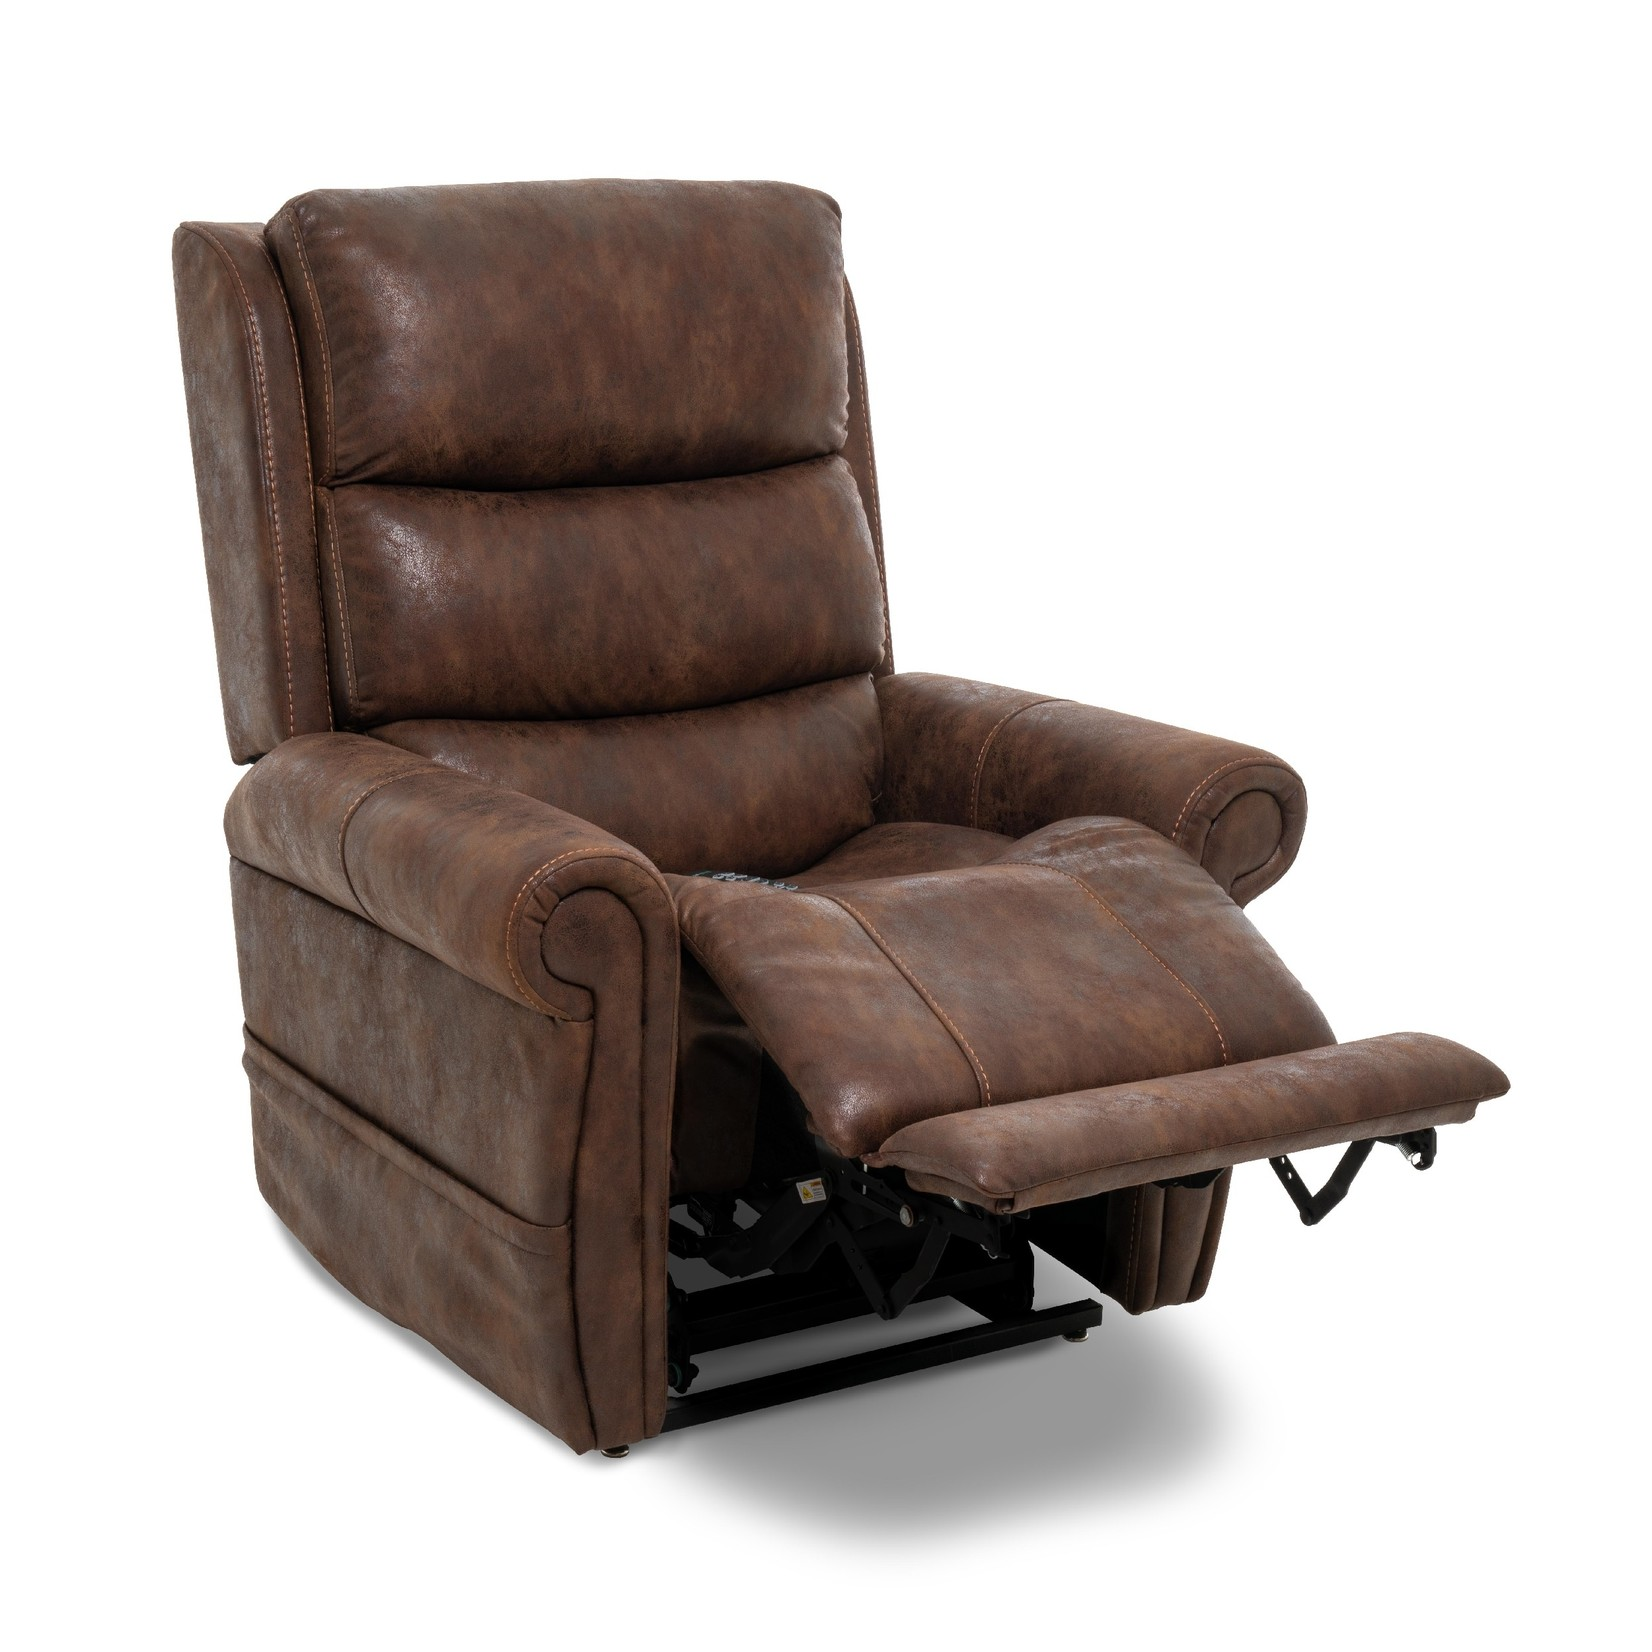 Pride Tranquil Lift Chair